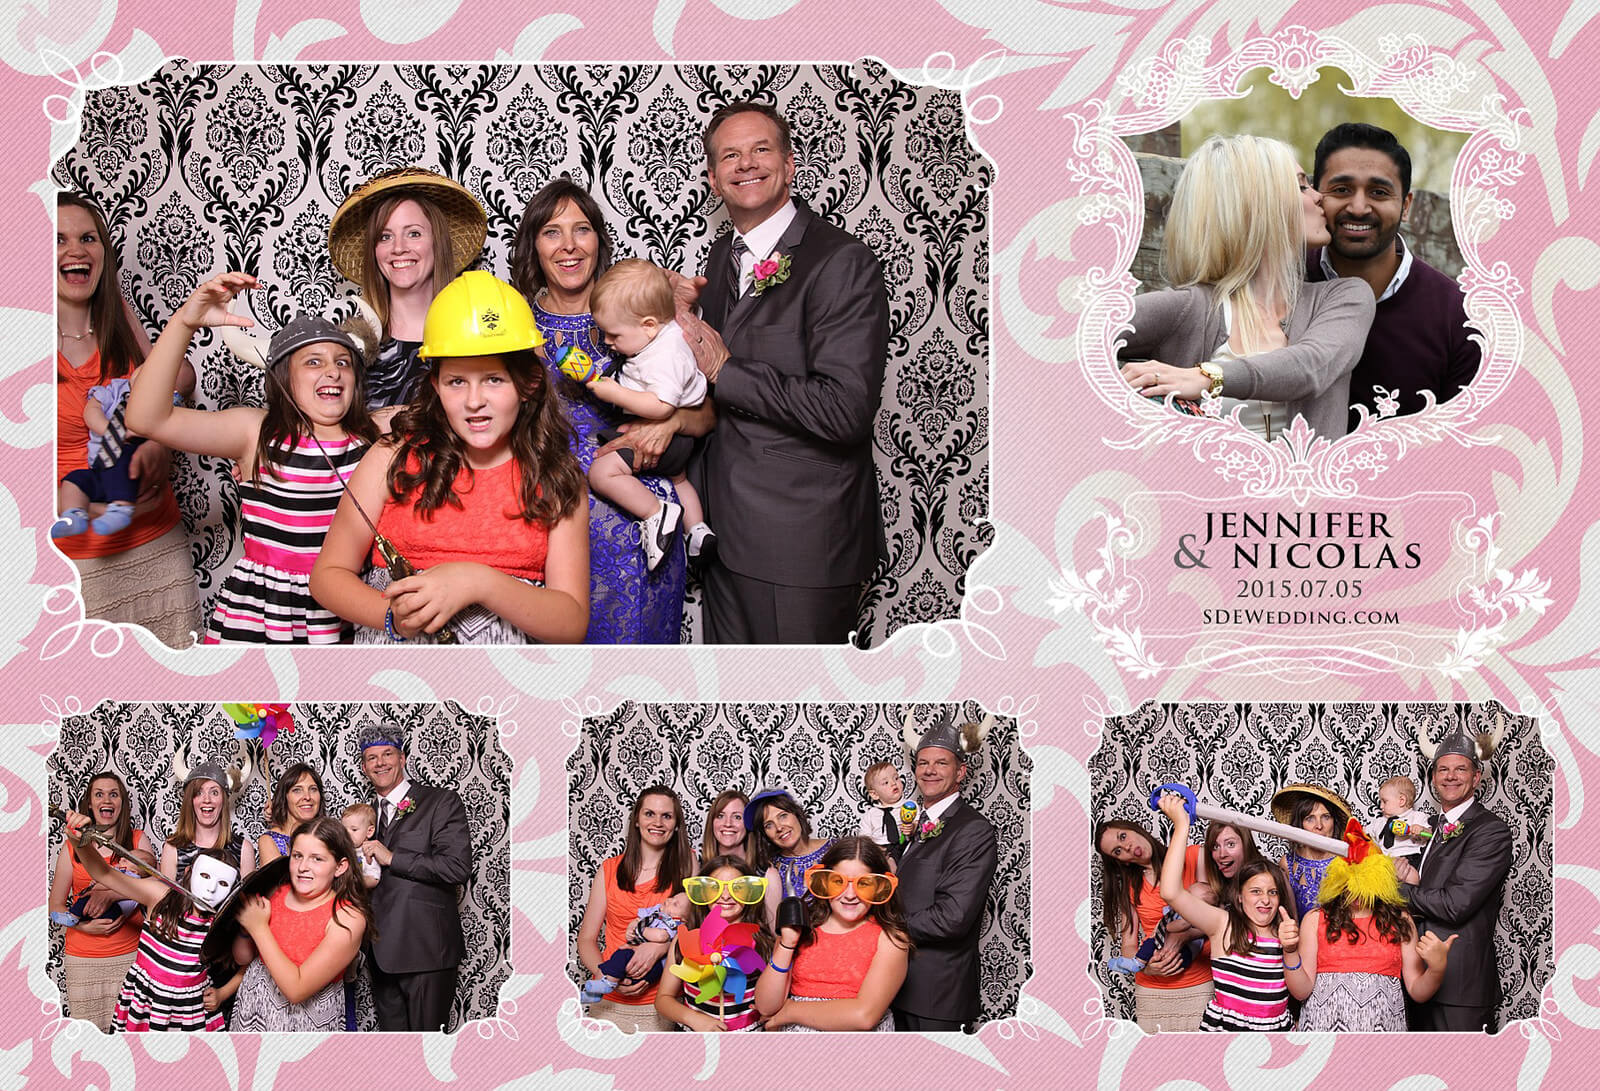 Toronto Liberty Grand Wedding Reception Photo Booth Rental 5